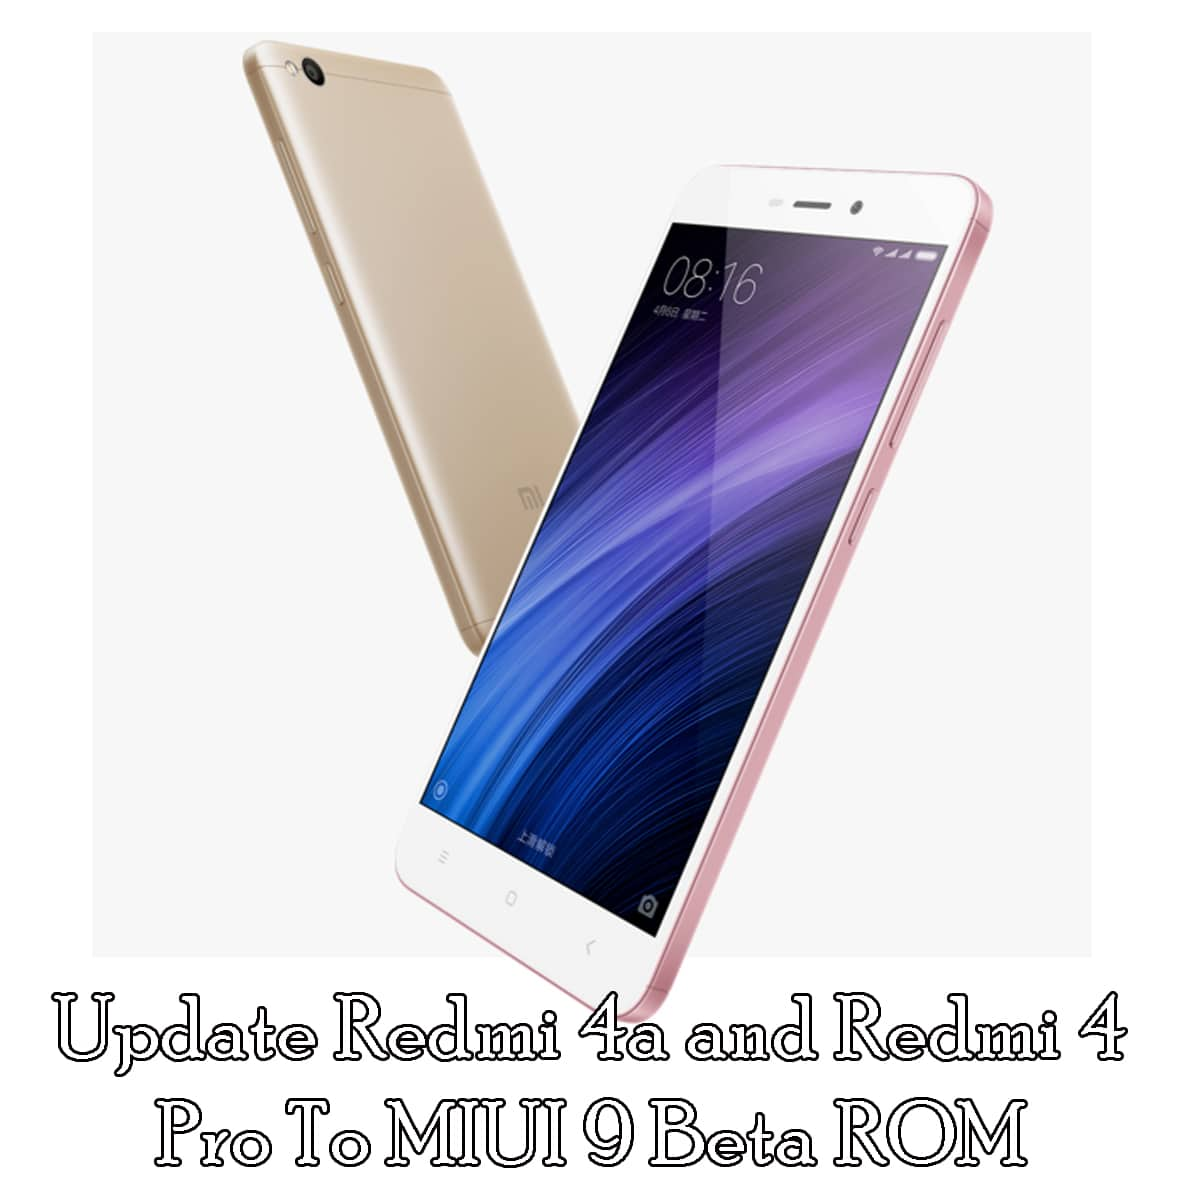 Download And Update Redmi 4a and Redmi 4 Pro To MIUI 9 Beta ROM